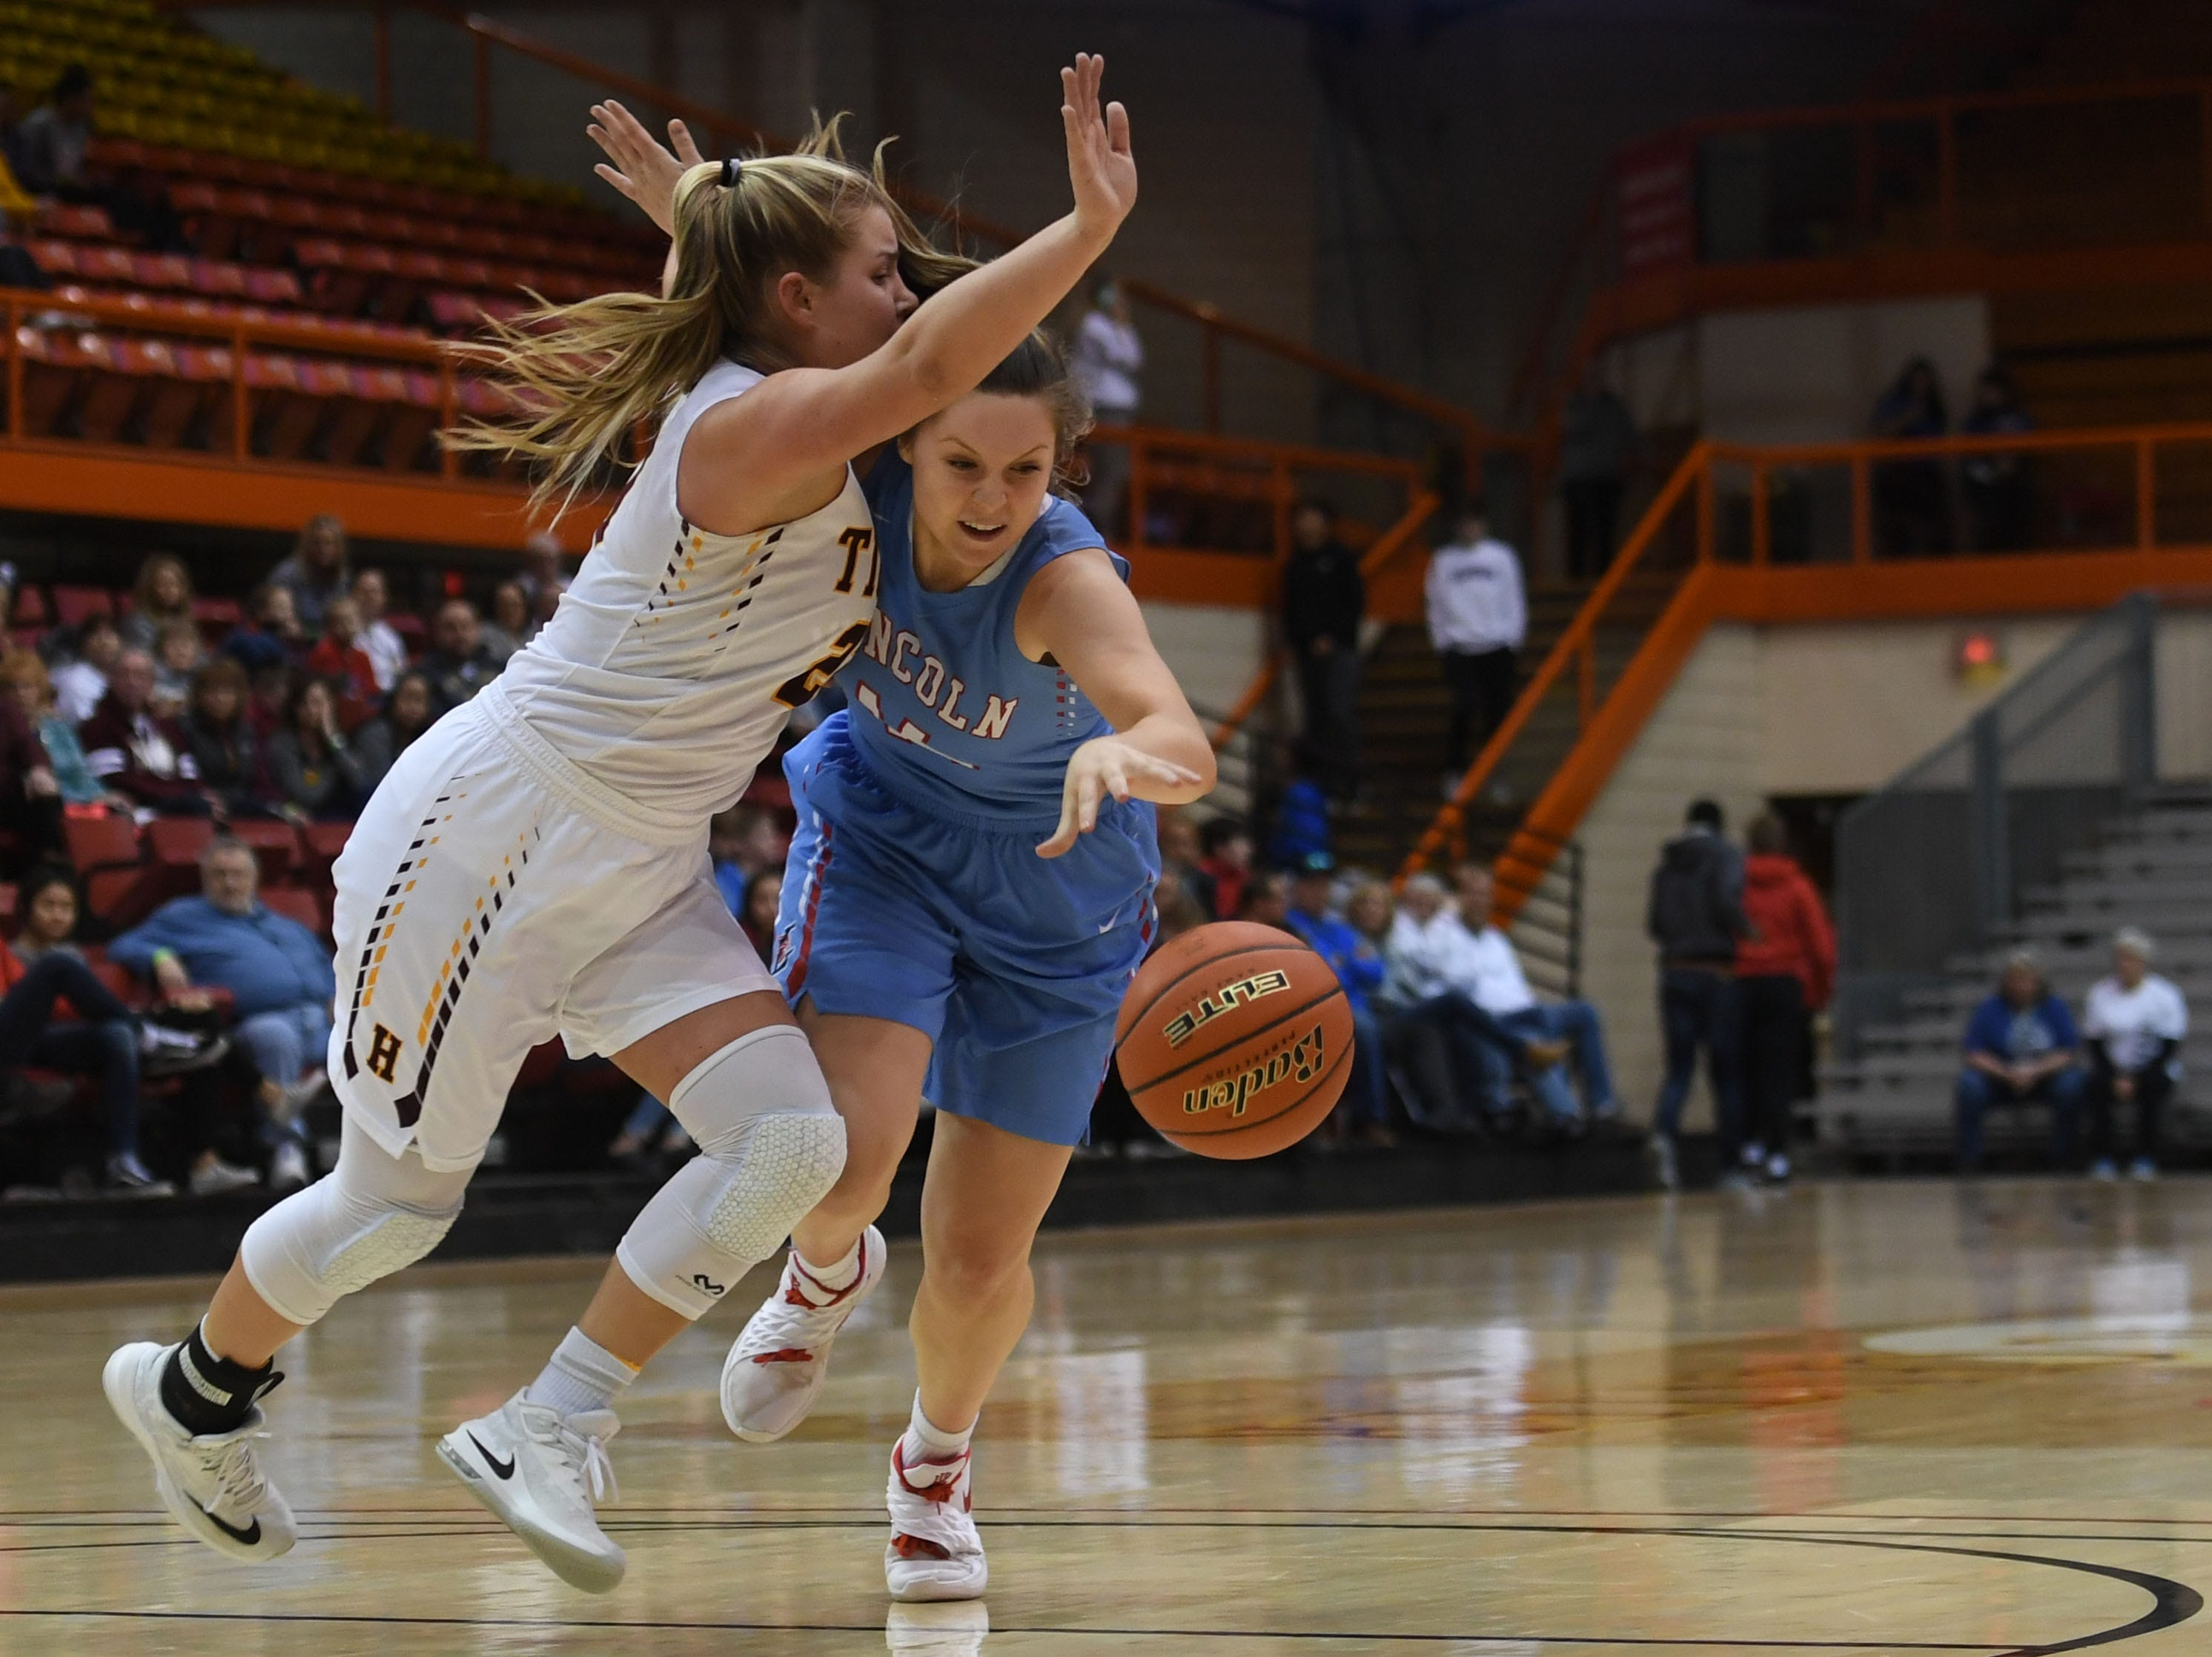 Lincoln's Emma Osmundson goes against Harrisburg's Faith Van Holland during the game in the Class AA semifinals Thursday, March 15, in Rapid City.